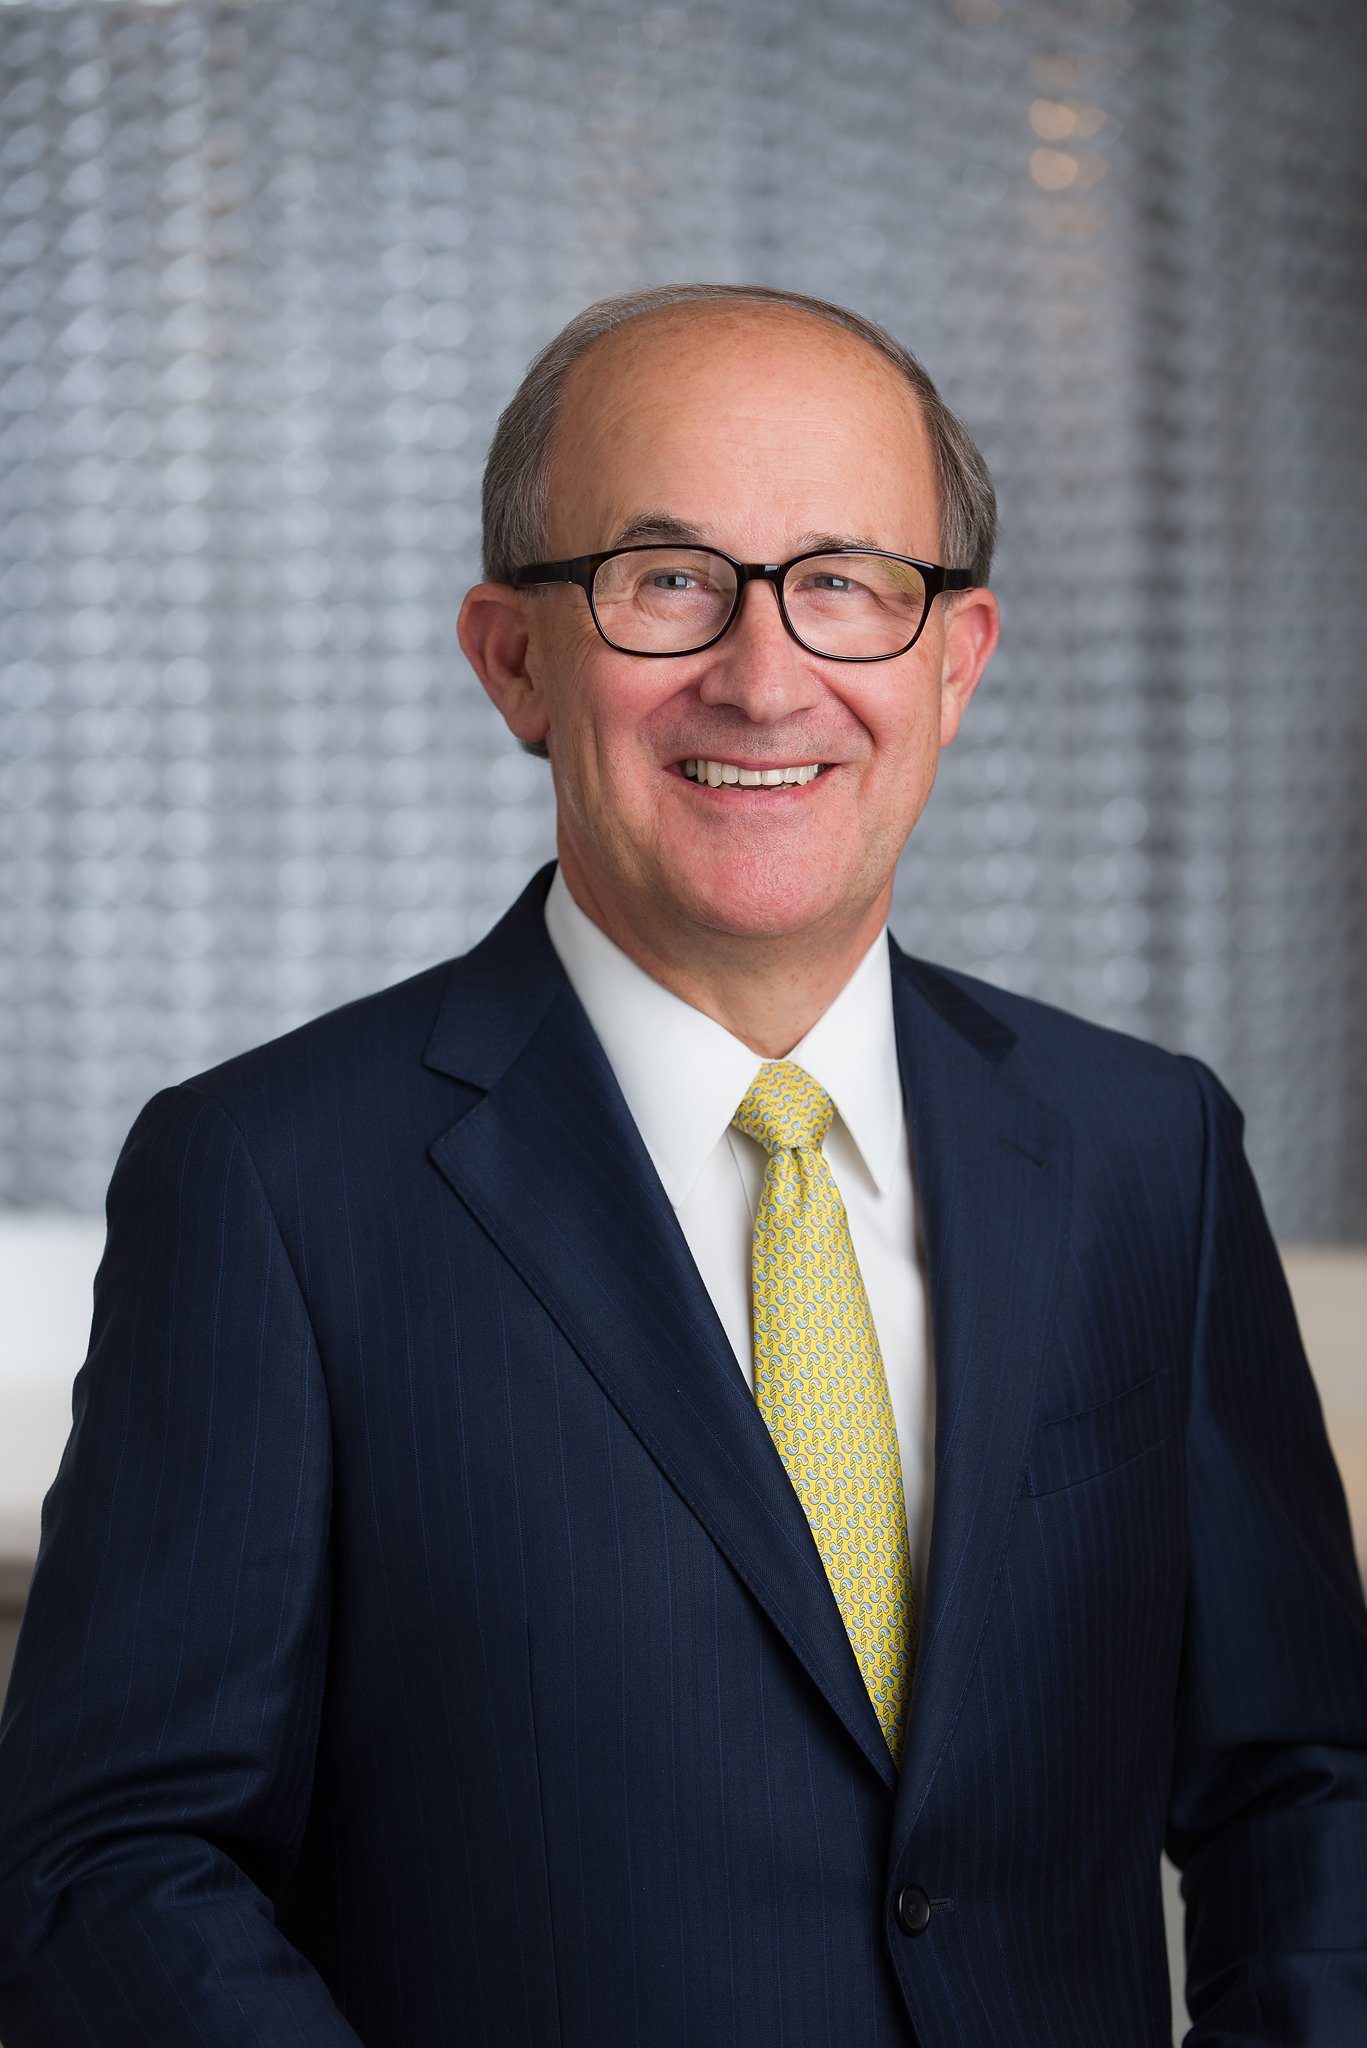 Portrait for the National Association of Corporate Directors.